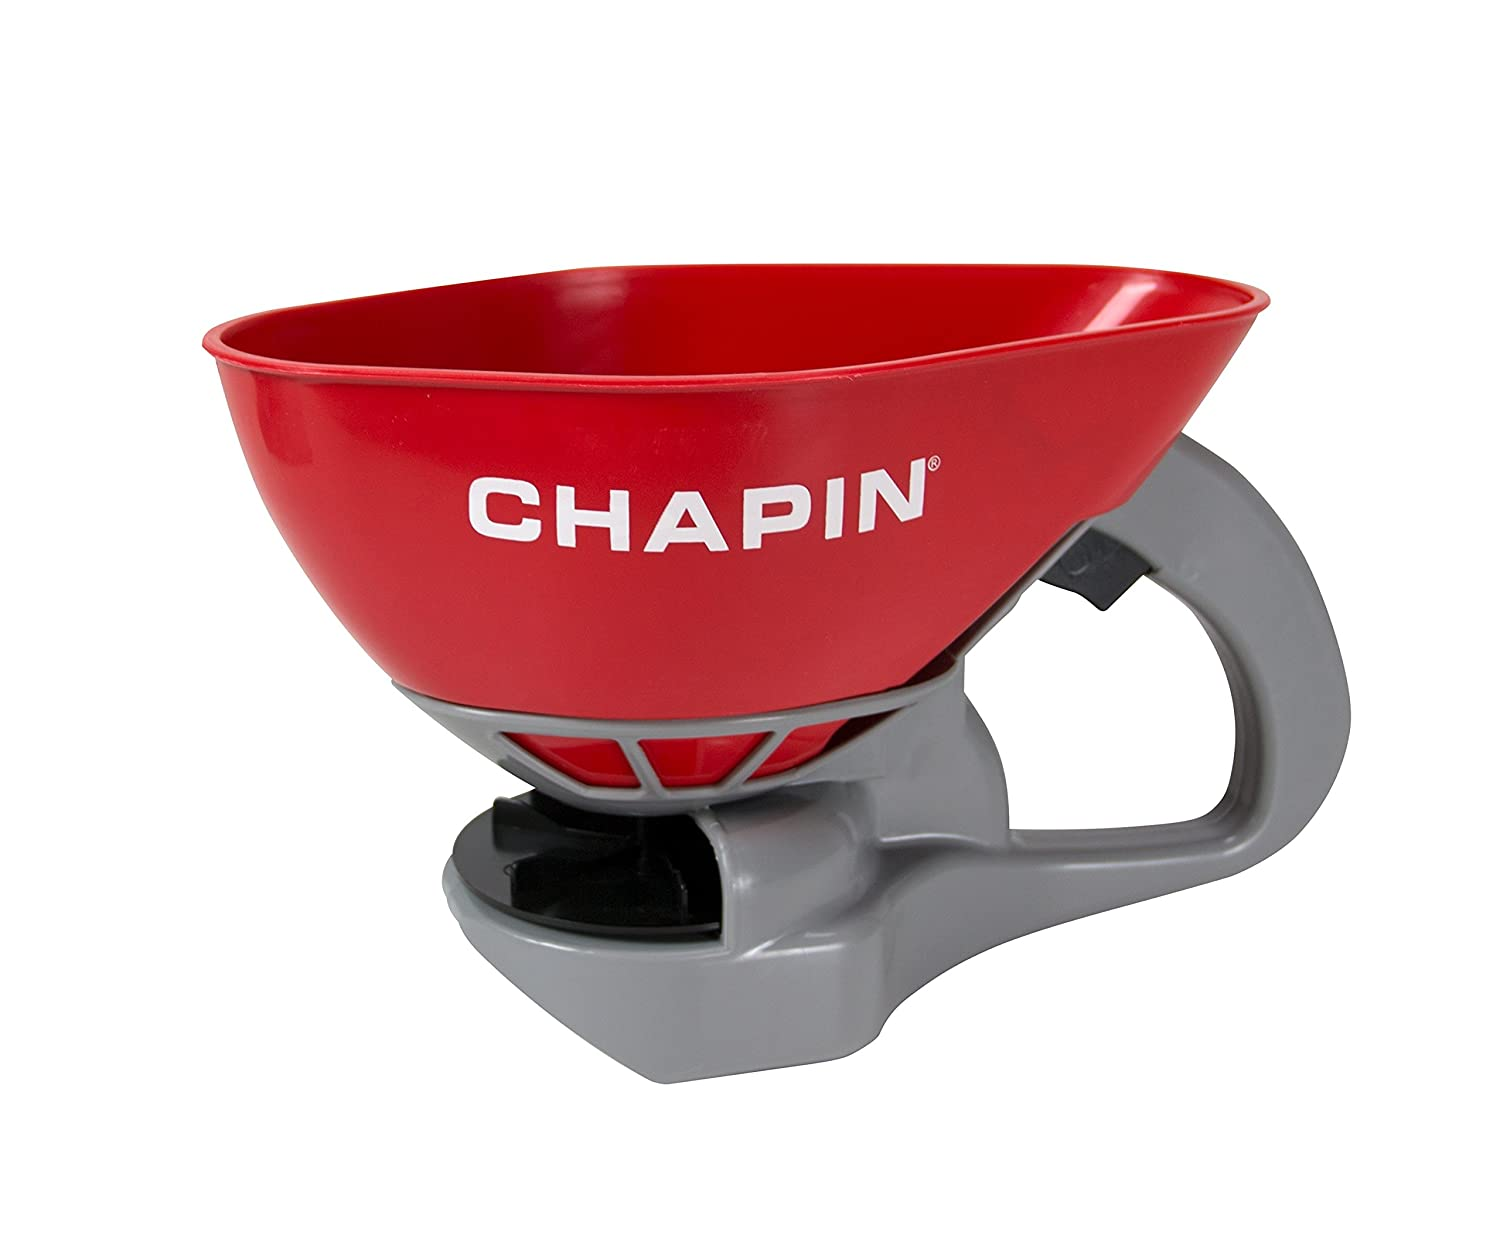 Chapin 8706A 1.6L/.4 Gal All season Poly Hand Crank Spreader For Seeds, Fertilizer and Ice Melt. 1.6L (1 Spreader/Package) Chapin International Inc.